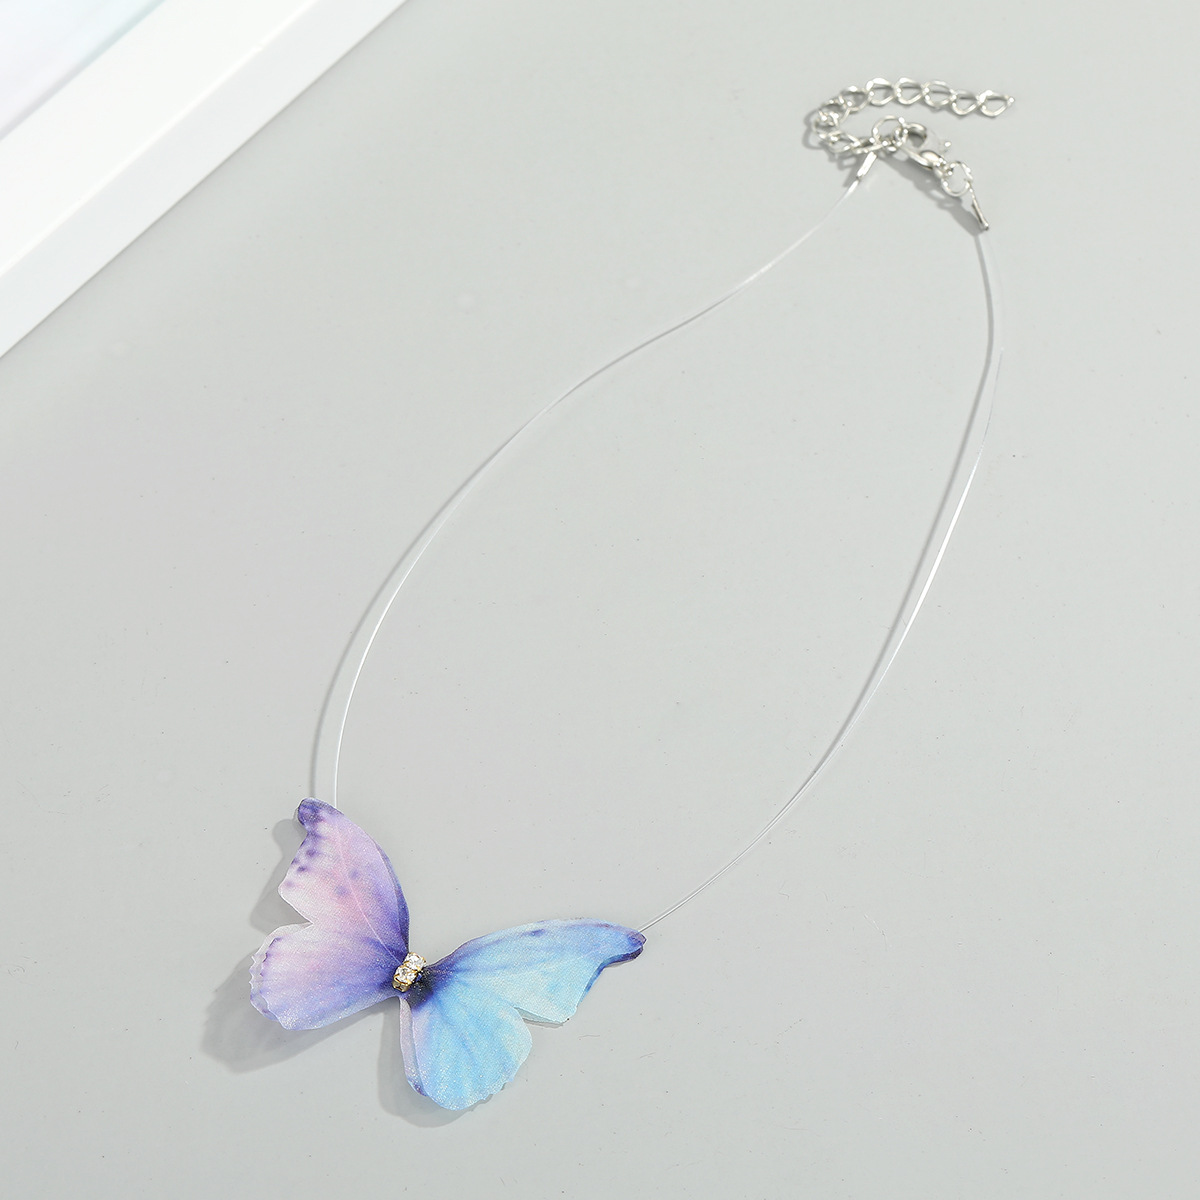 Super fairy jewelry butterfly necklace lace choker neck chain design sense clavicle chain wholesale nihaojewelry NHGO232055